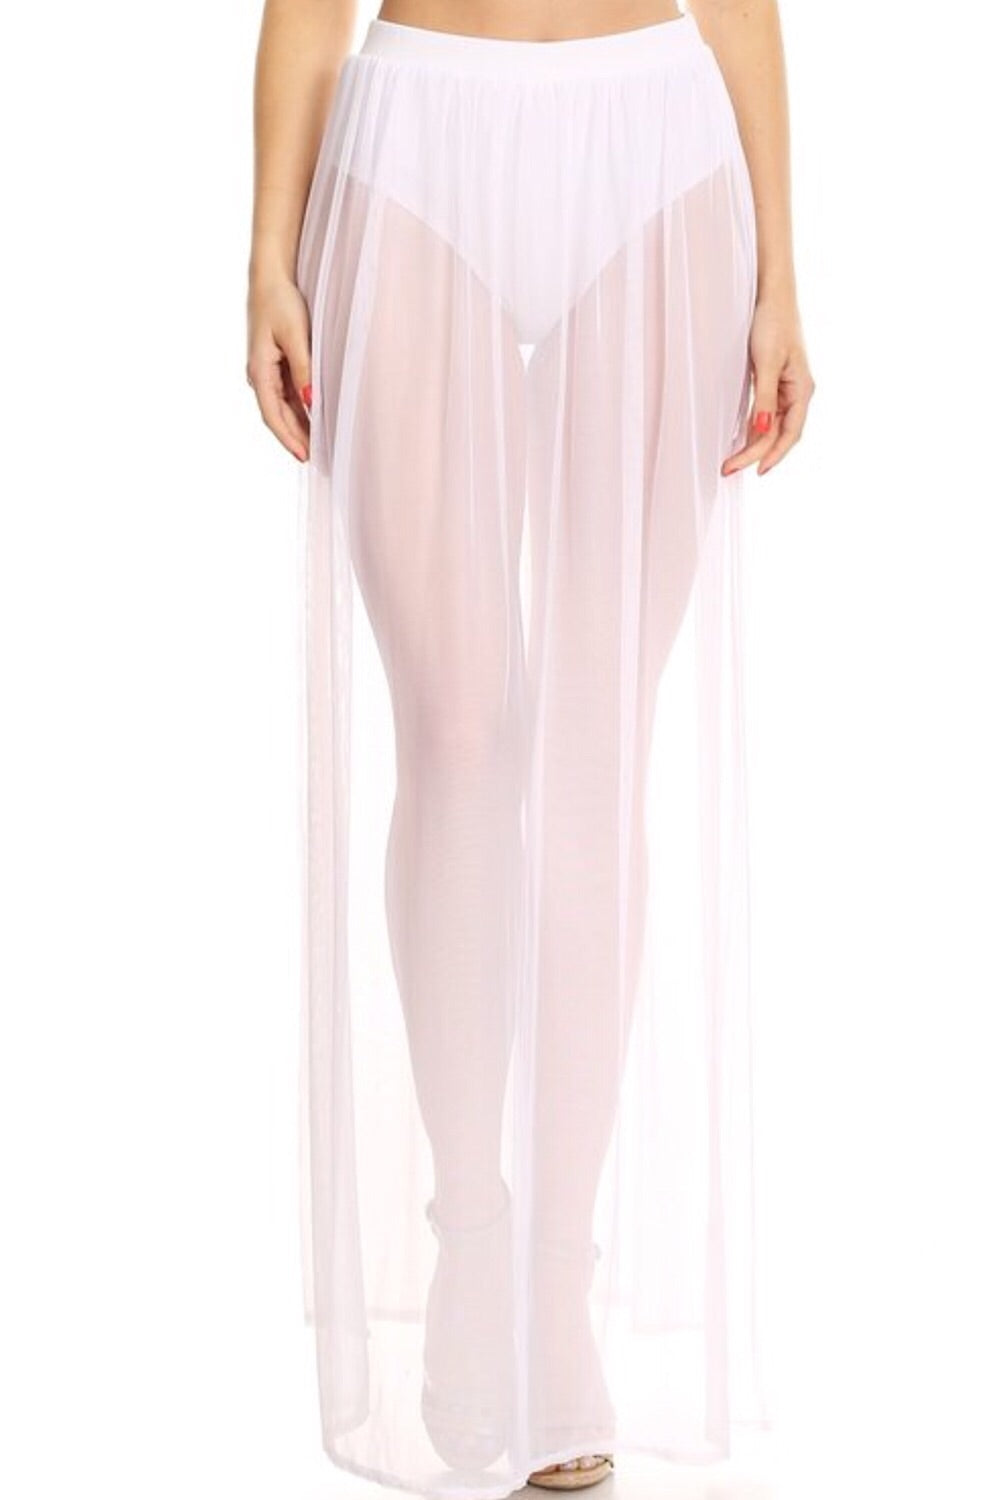 Sahara Sands Tulle Maxi Skirt White